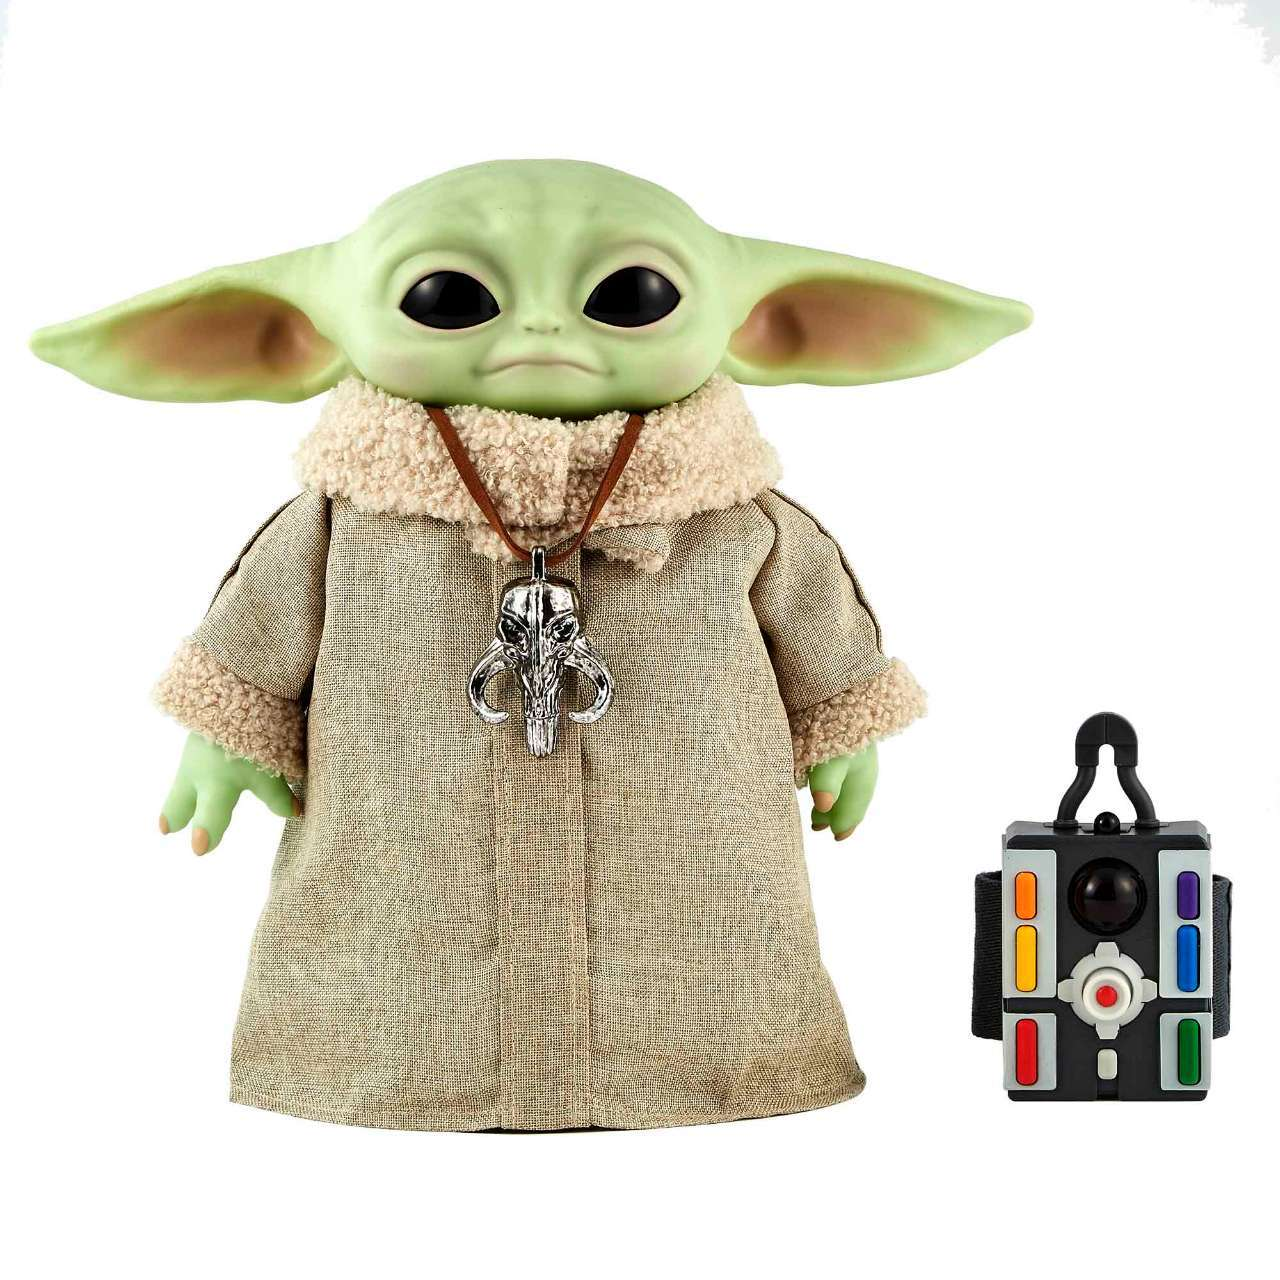 The Best Baby Yoda The Mandalorian Plush Are on Sale For Black Friday